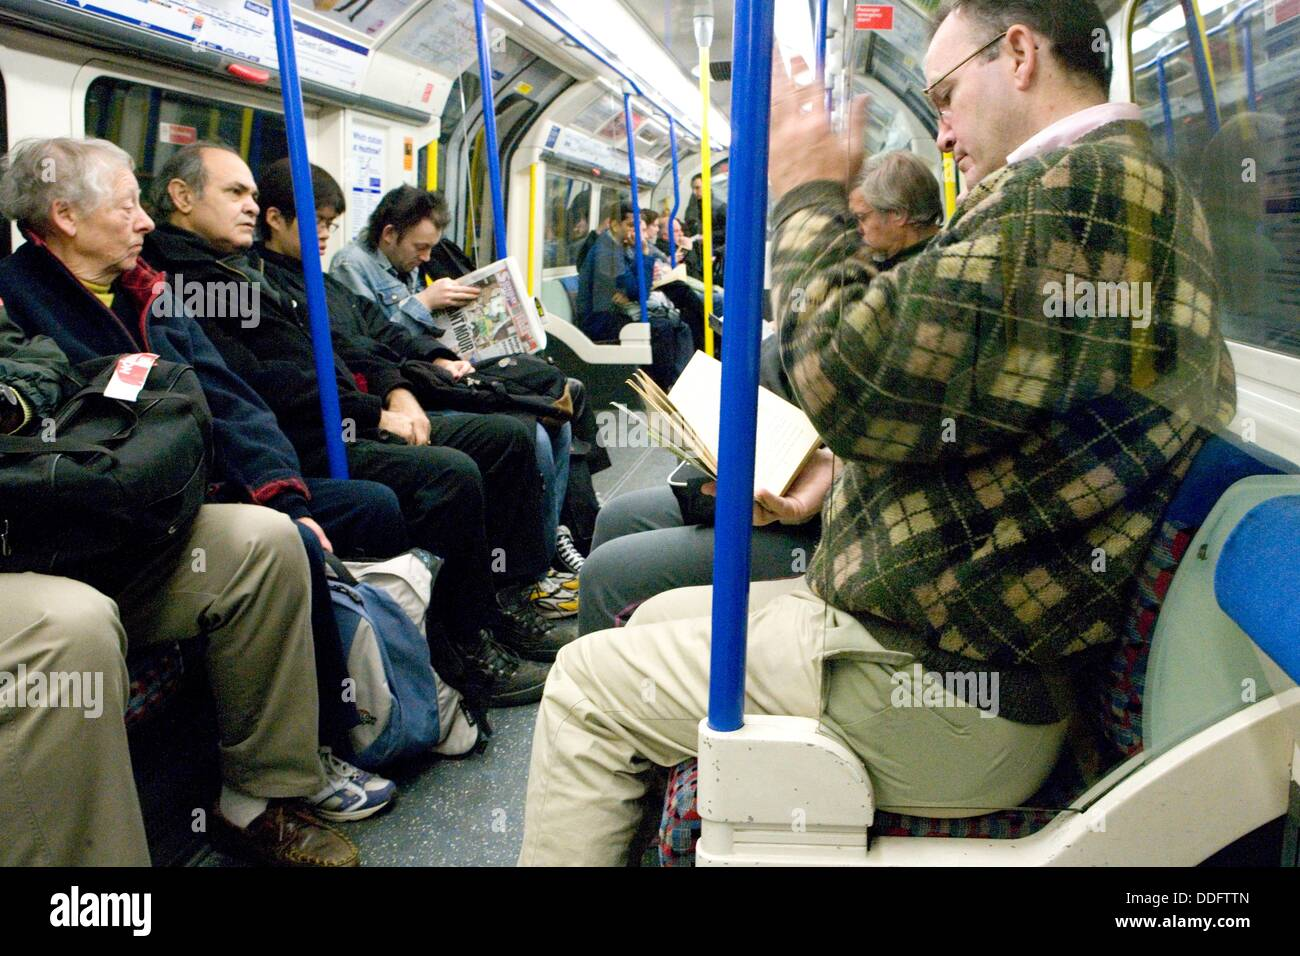 Commuters on a Tube train, London, England - Stock Image